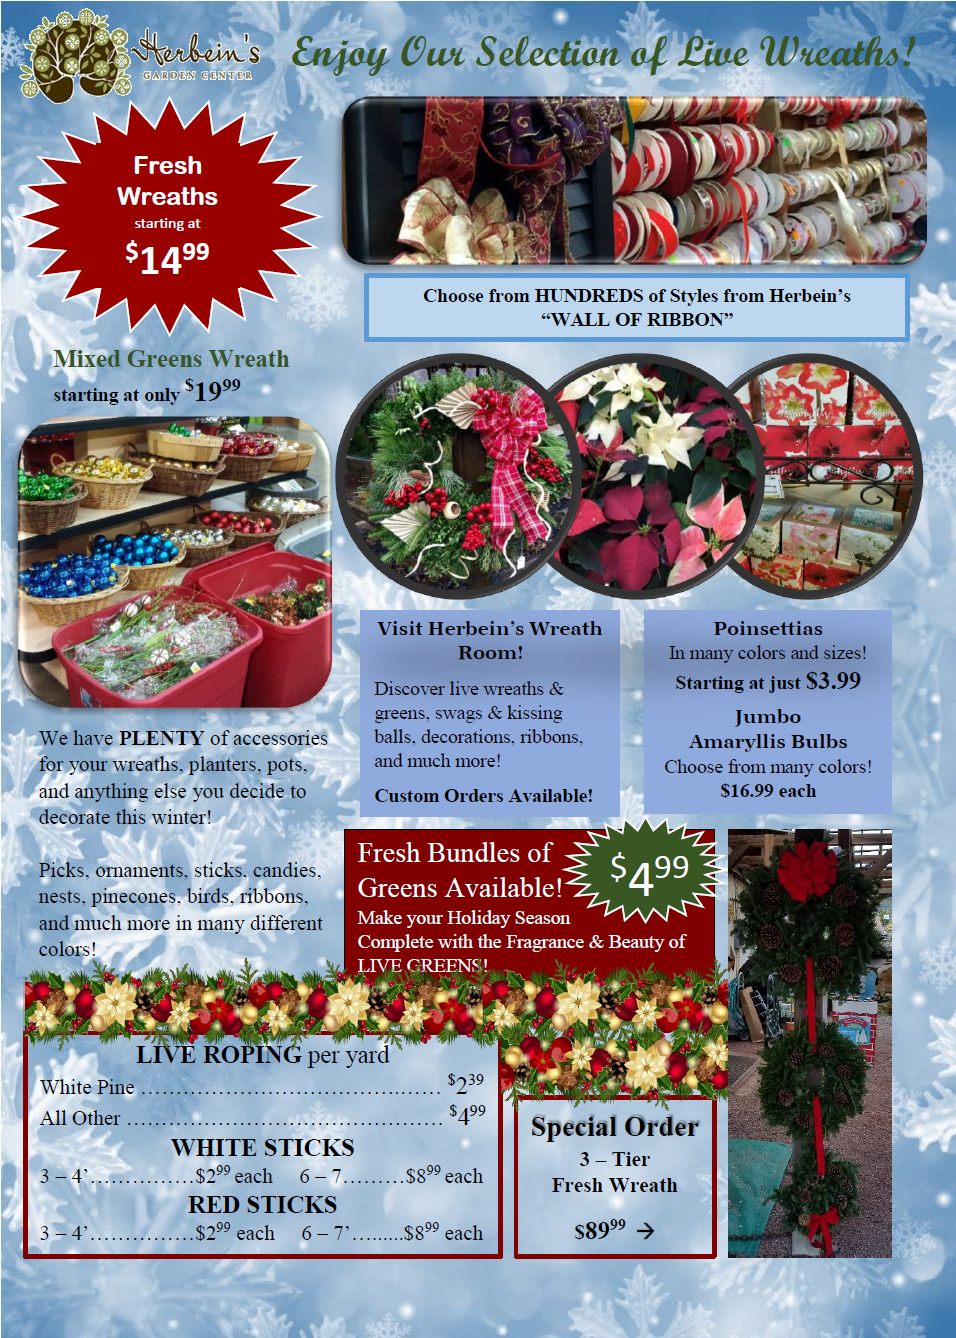 Herbeins Garden Center Holiday Guide 2018 pg.3